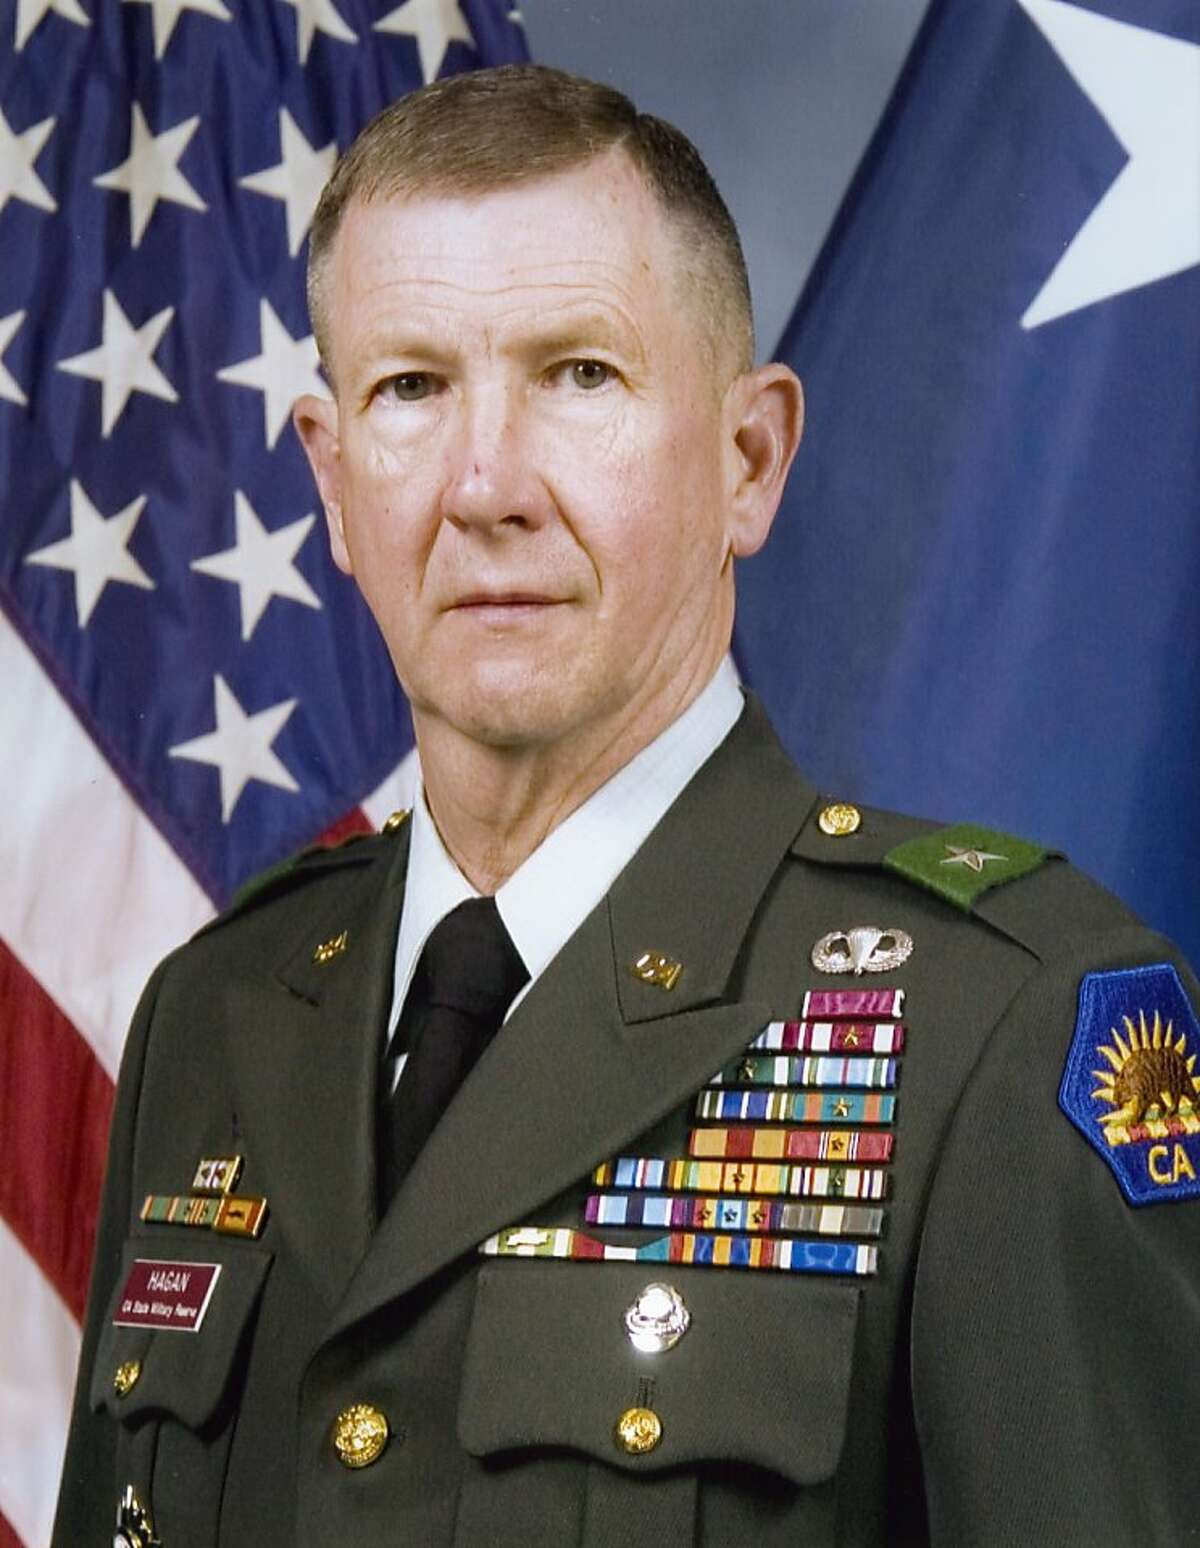 Jack Hagan, current director of the CPUC's Safety and Enforcement Division, in a photograph taken when he was Commander of the California State Military Reserve.